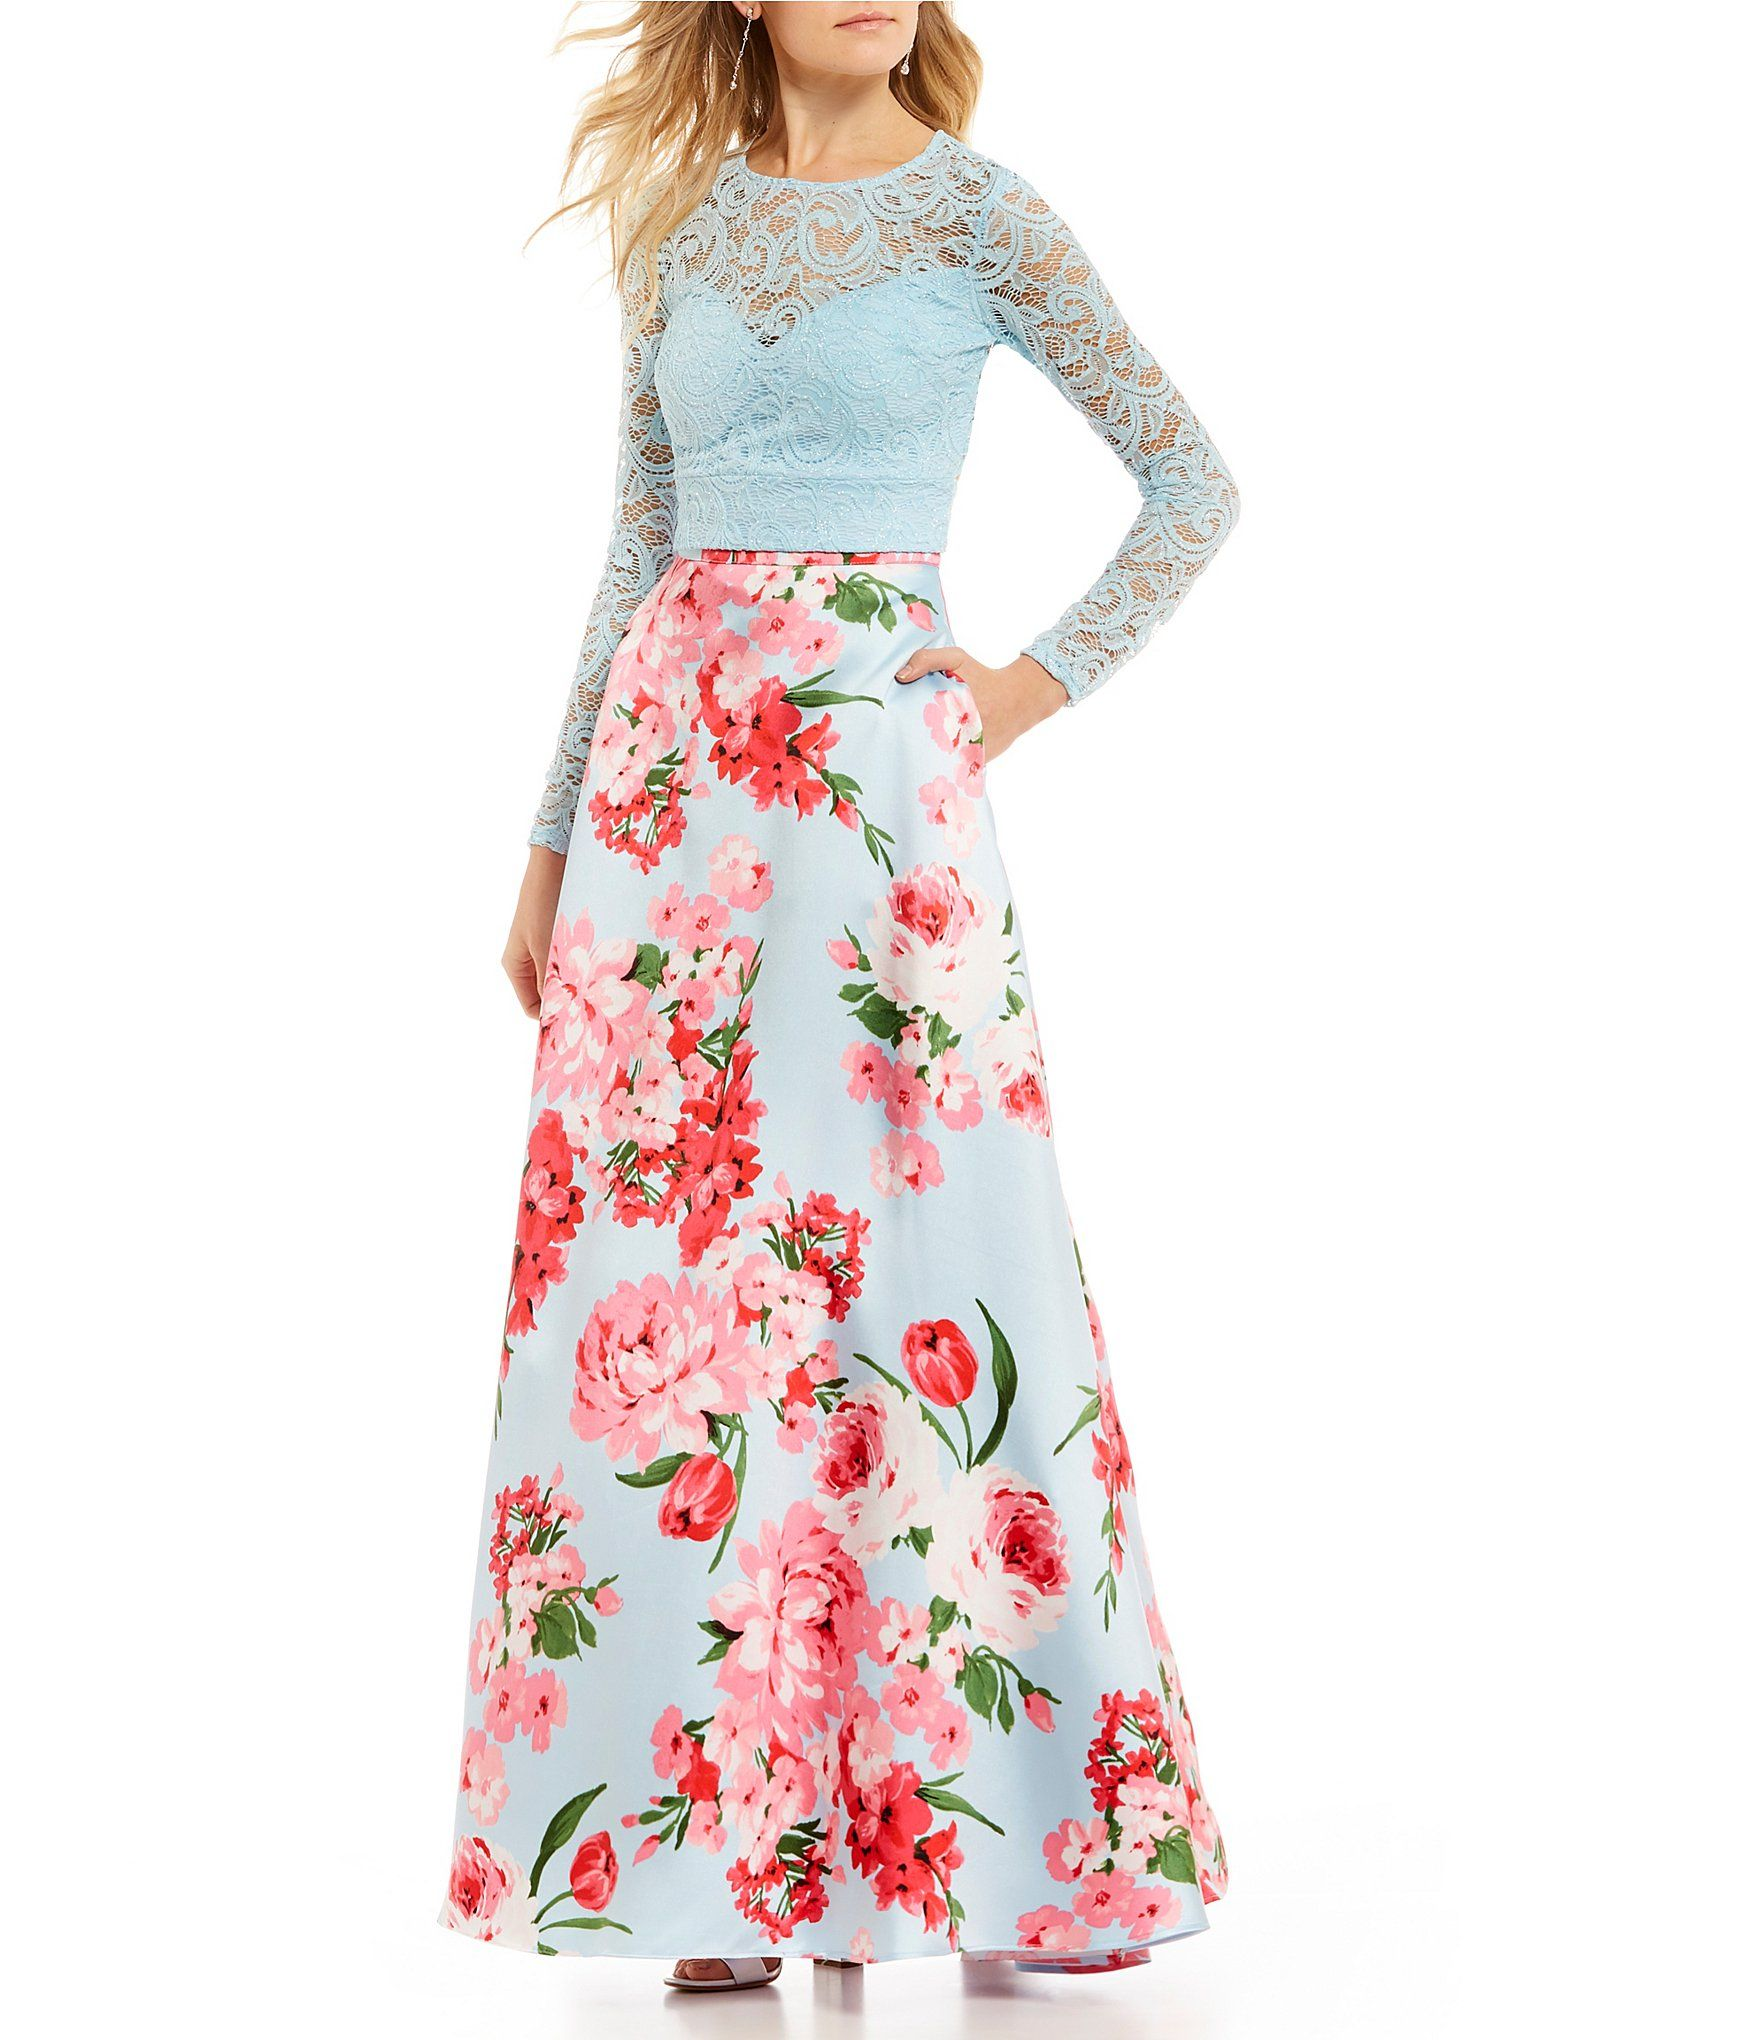 B darlin long sleeve lace top with floral skirt twopiece ball gown